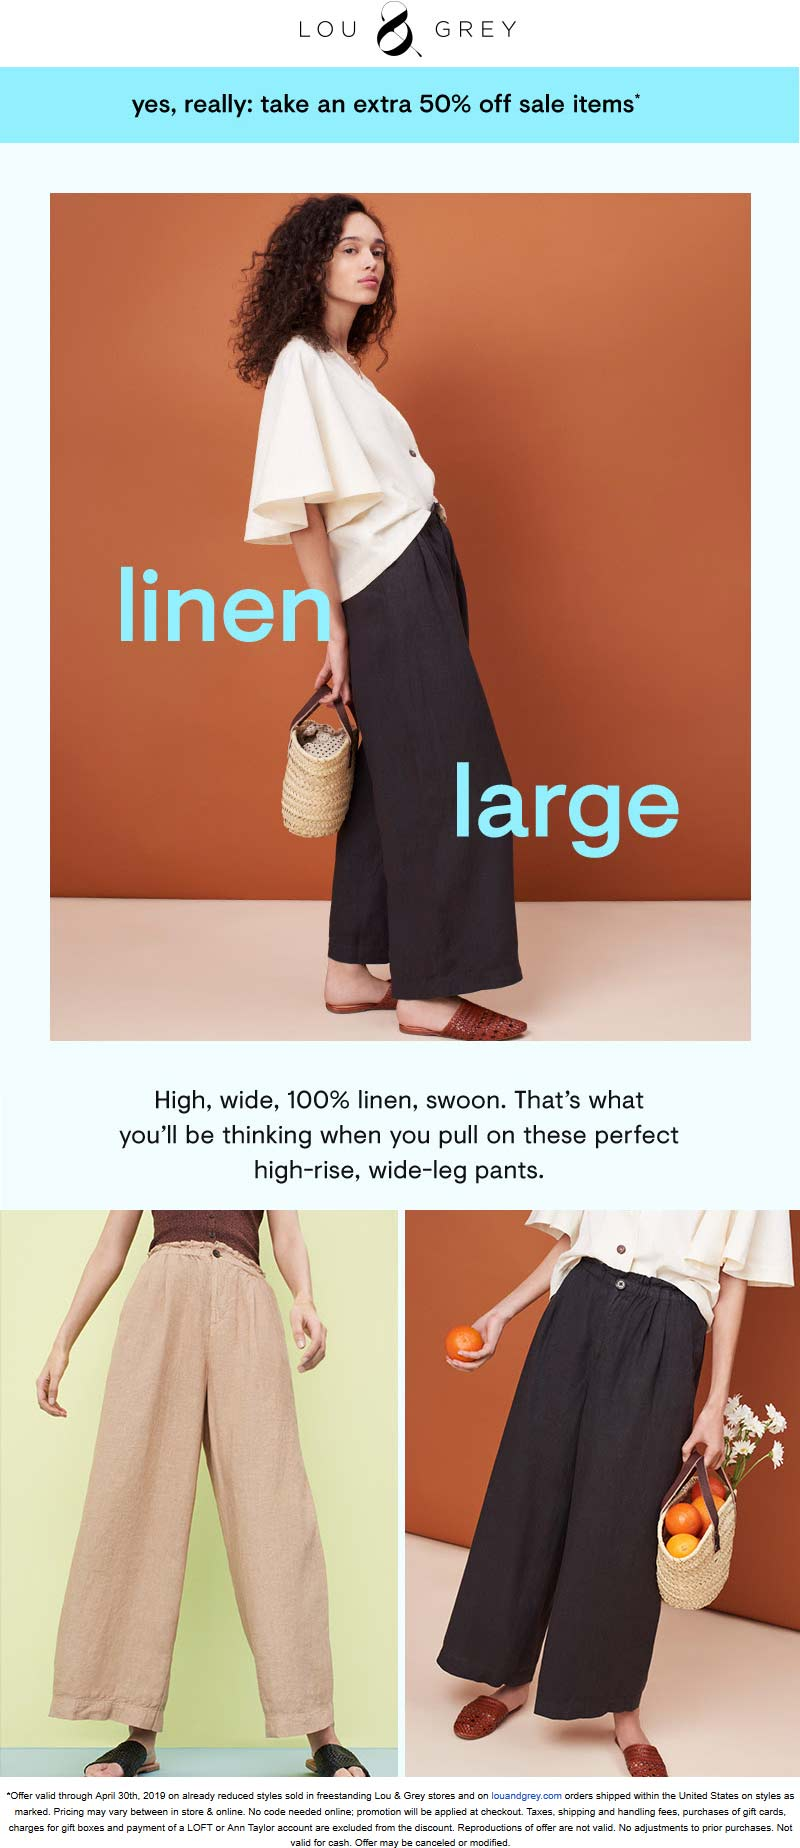 Lou & Grey Coupon June 2019 Extra 50% off sale items at Lou & Grey, ditto online